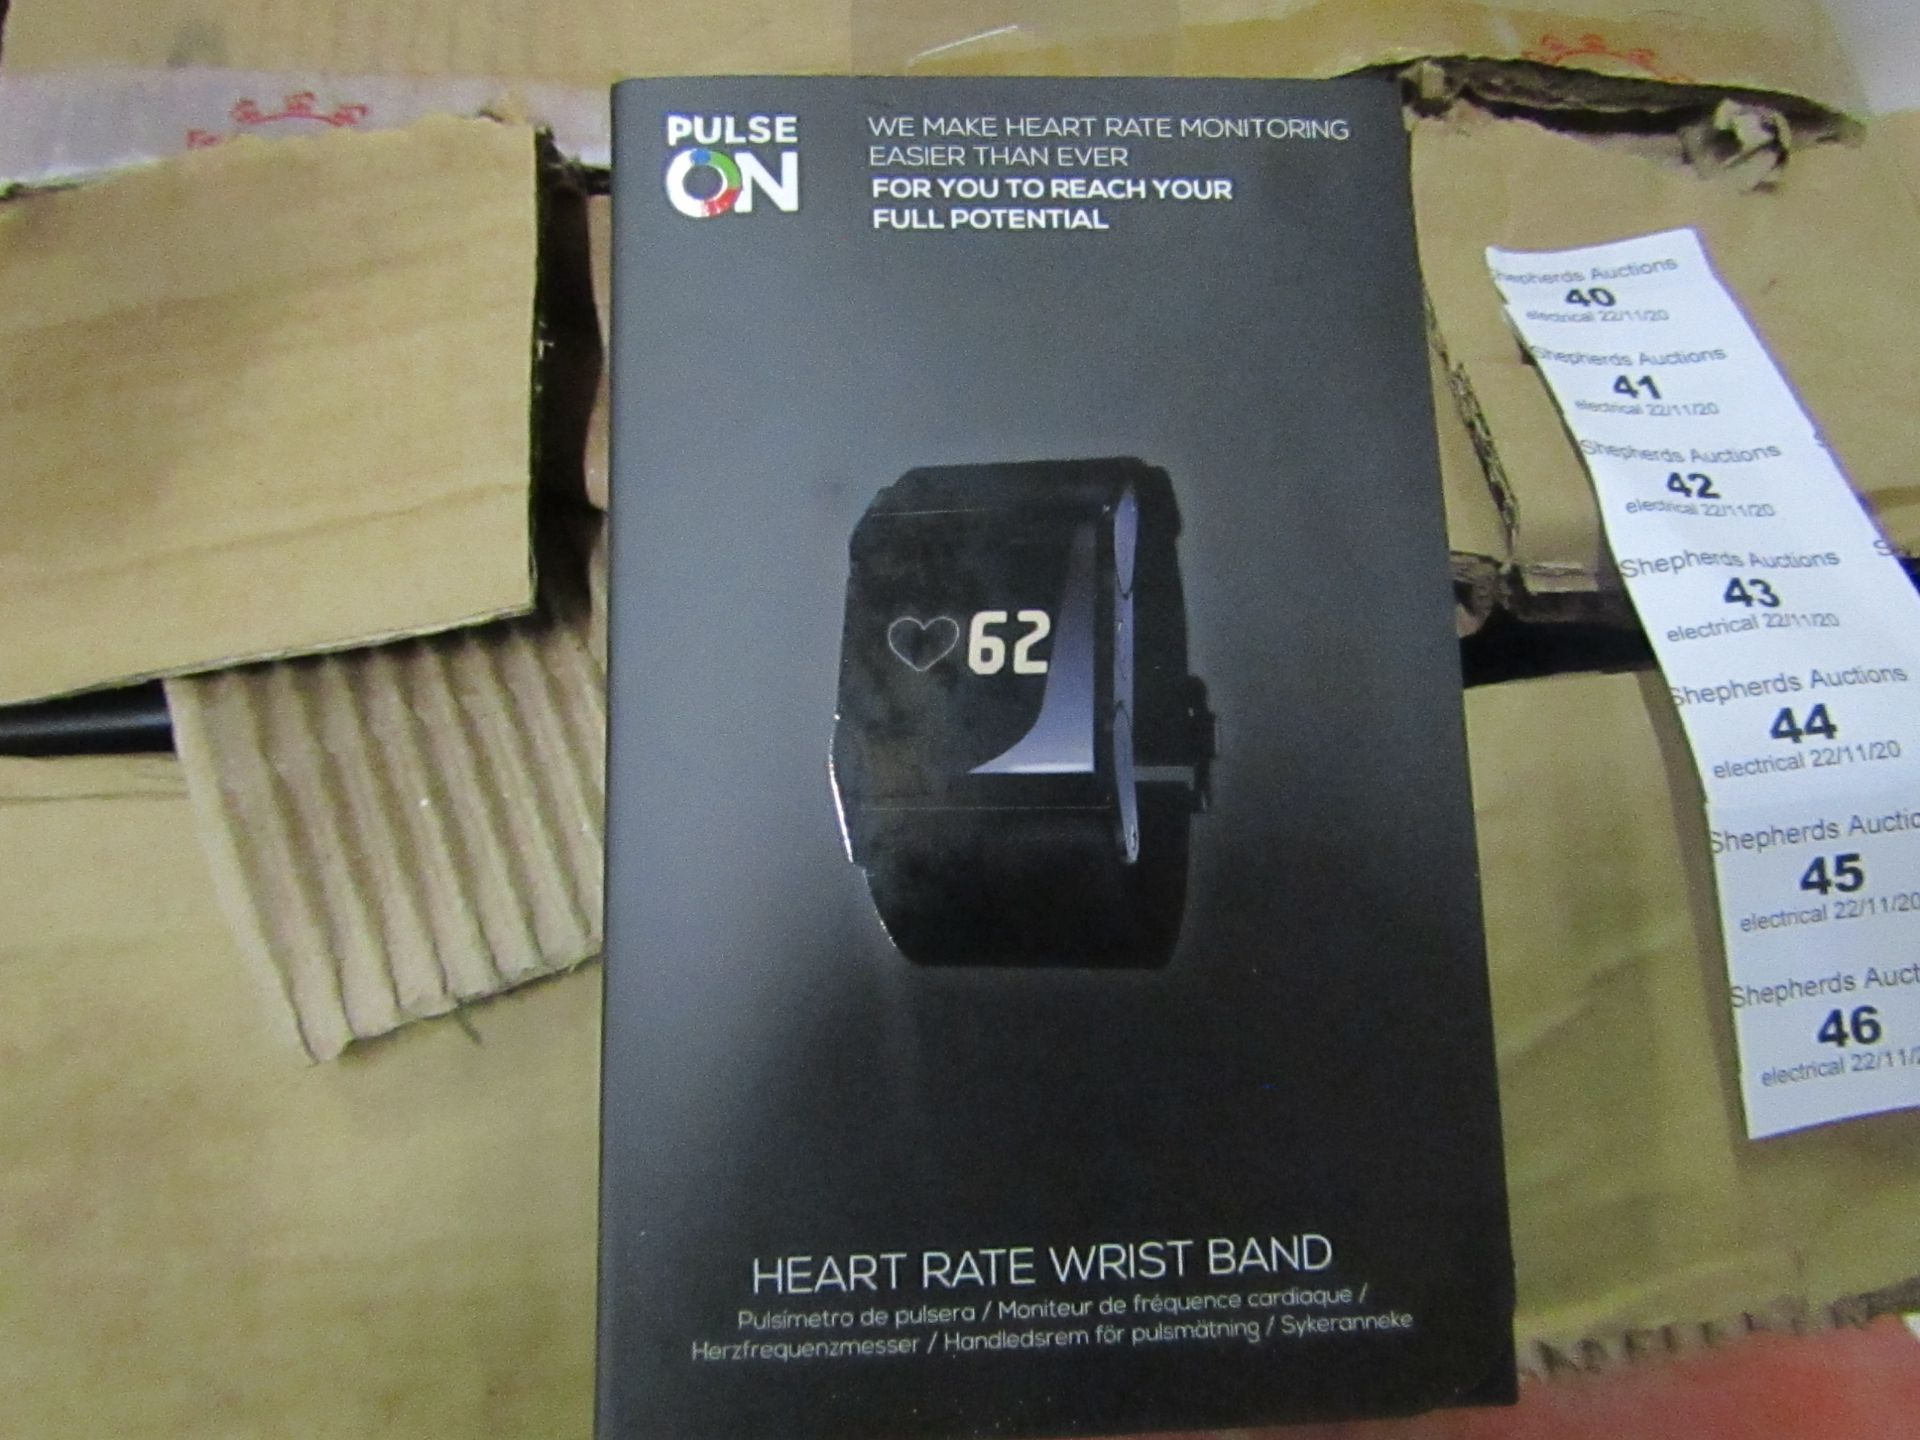 Pulse On - Heart Rate Wrist Band - unchecked & Boxed